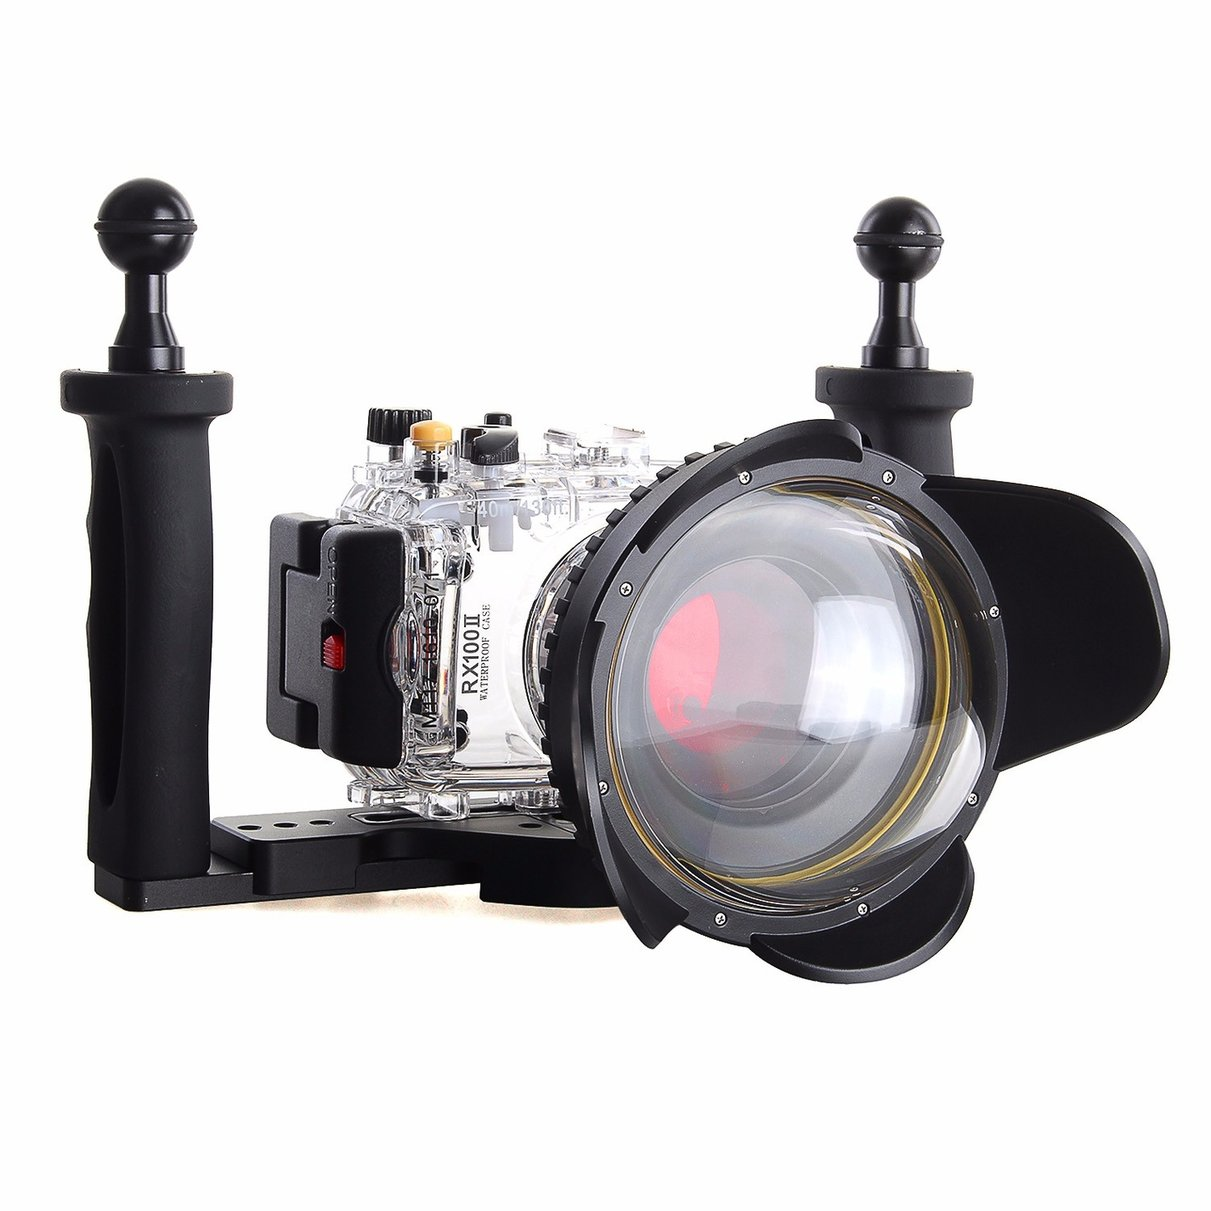 40m Waterproof Underwater Camera Housing Diving Case for SONY RX100 ii + Red Filter + Fisheye Lens + Two Hands Aluminium Tray